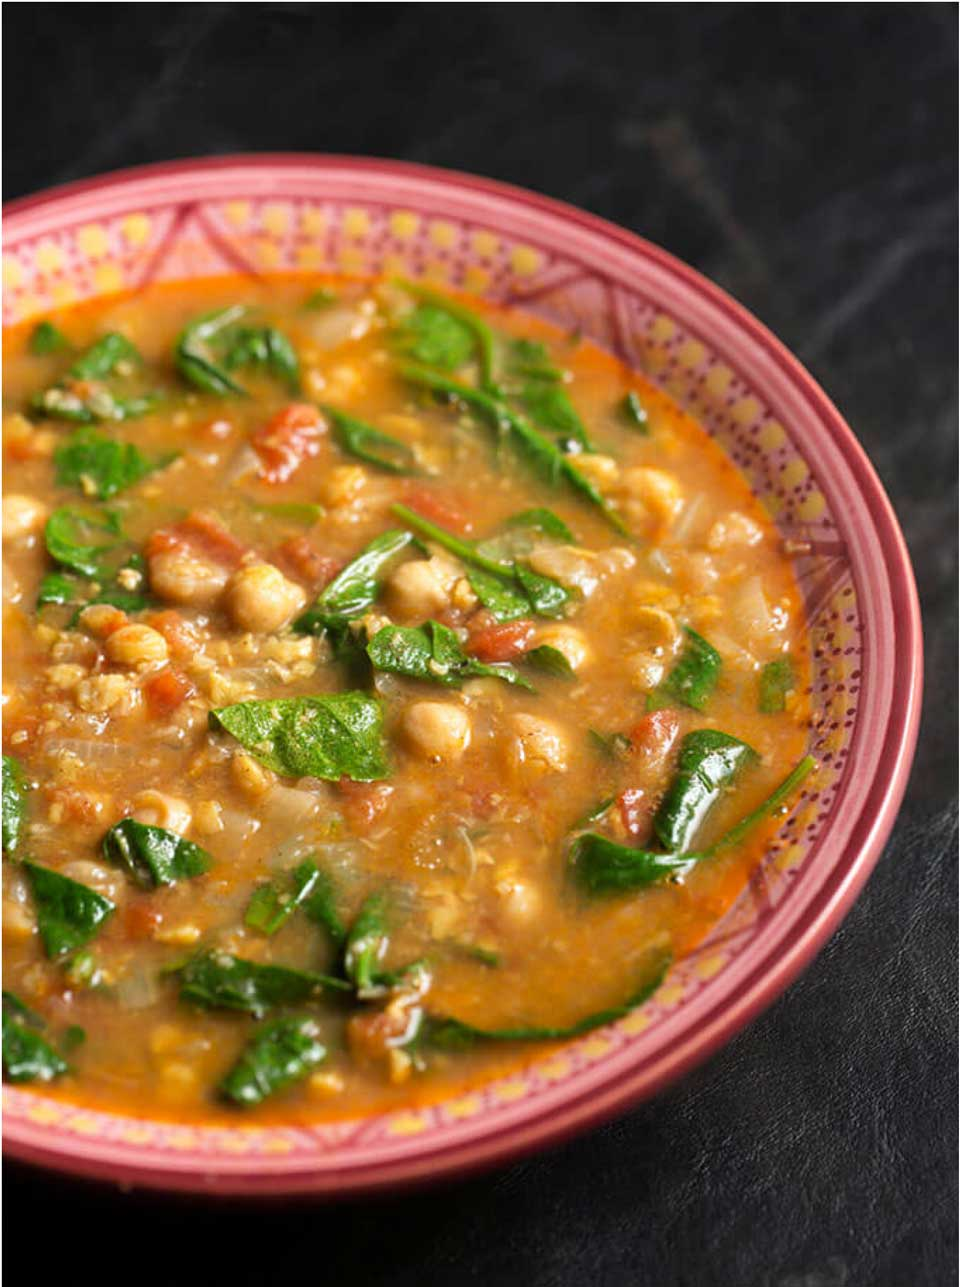 Stews can be veggie-loaded, and we bet you won't even miss the meat! Check out this Instant Pot Moroccan Chickpea Stew from Sandy at Simply Happy Foodie, and then be sure to peek at our whole list of yummy, healthier stews, plus tips and tricks!